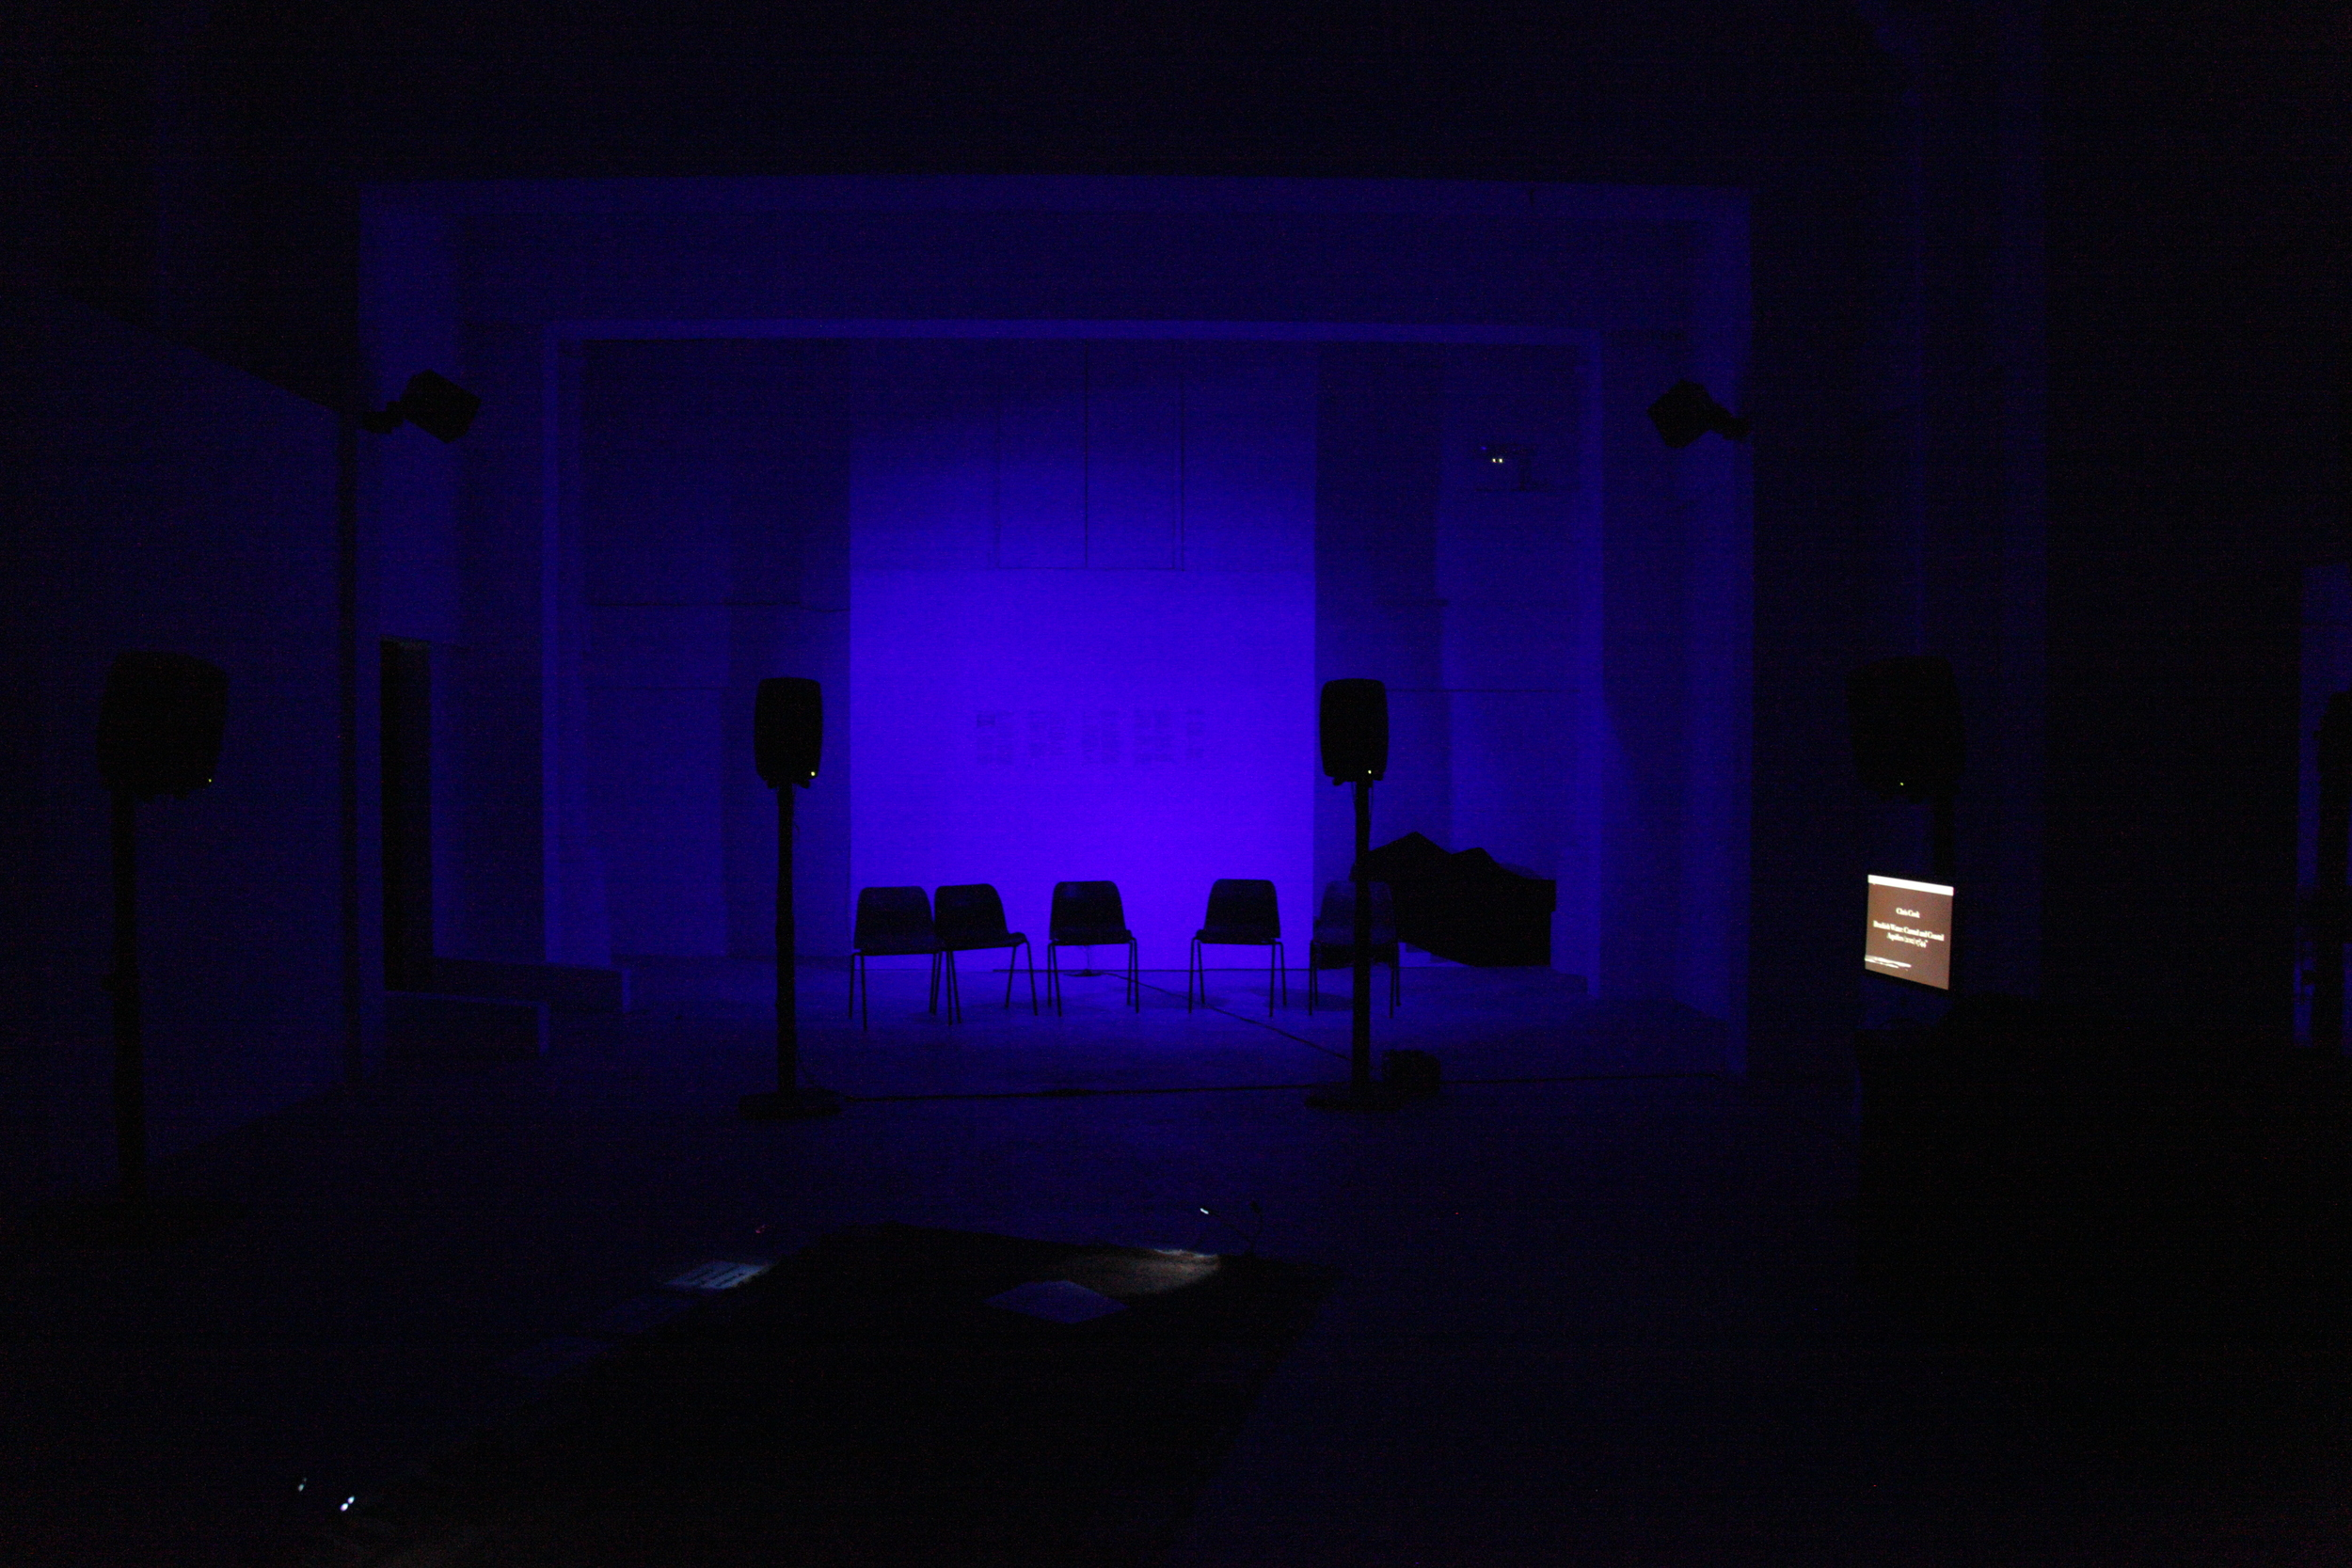 8-channel Soundscape Room, Sho-Zyg, 2012